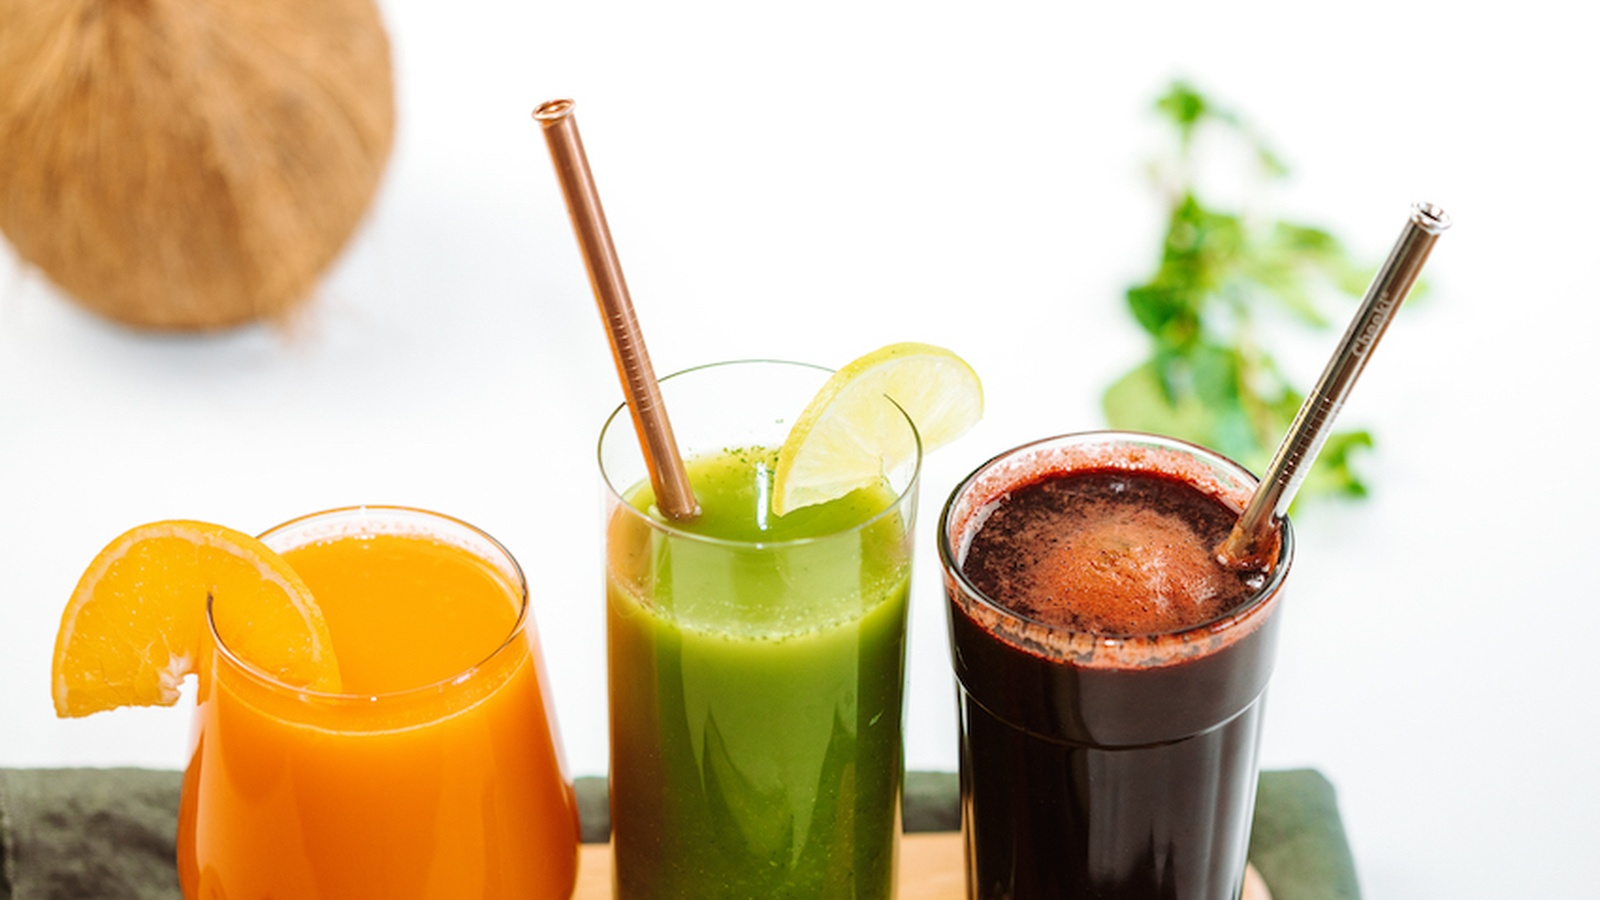 Are You Making These 8 Common Juicing Mistakes?